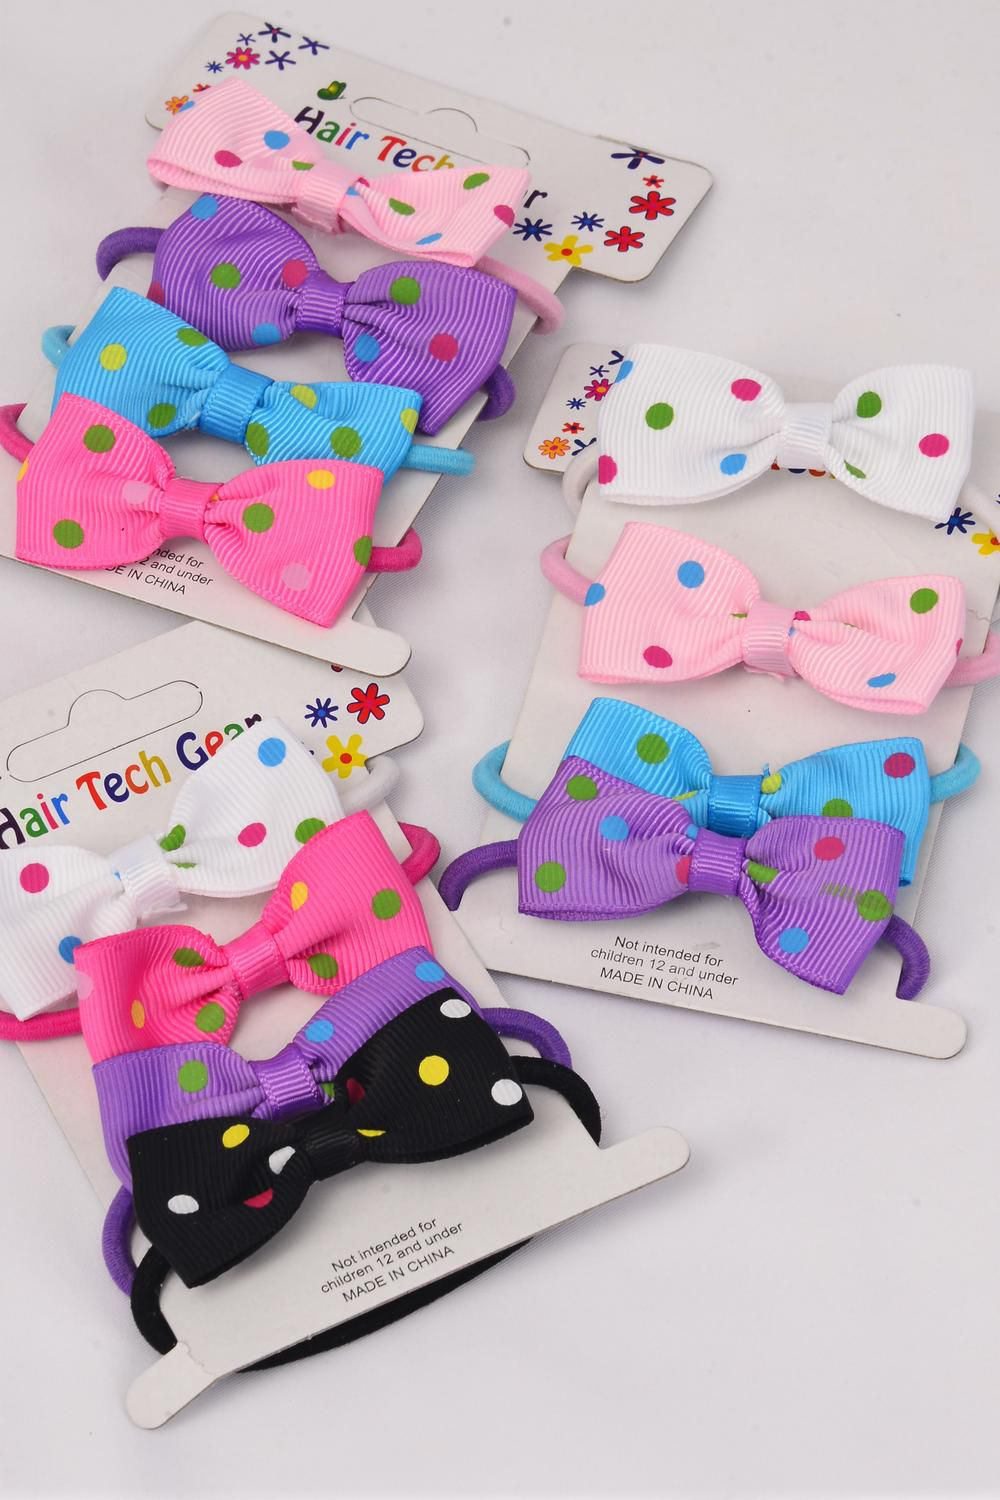 "Elastic Pony Grosgrain Bow-tie 4 pecs Multi Polka Dots/DZ **Elastic** Bow-tie Size-2""x 1"" Wide,4 of each Color Mix,Individual OPP Bag & UPC code,4pecs per Card,12 Card=Dozen"